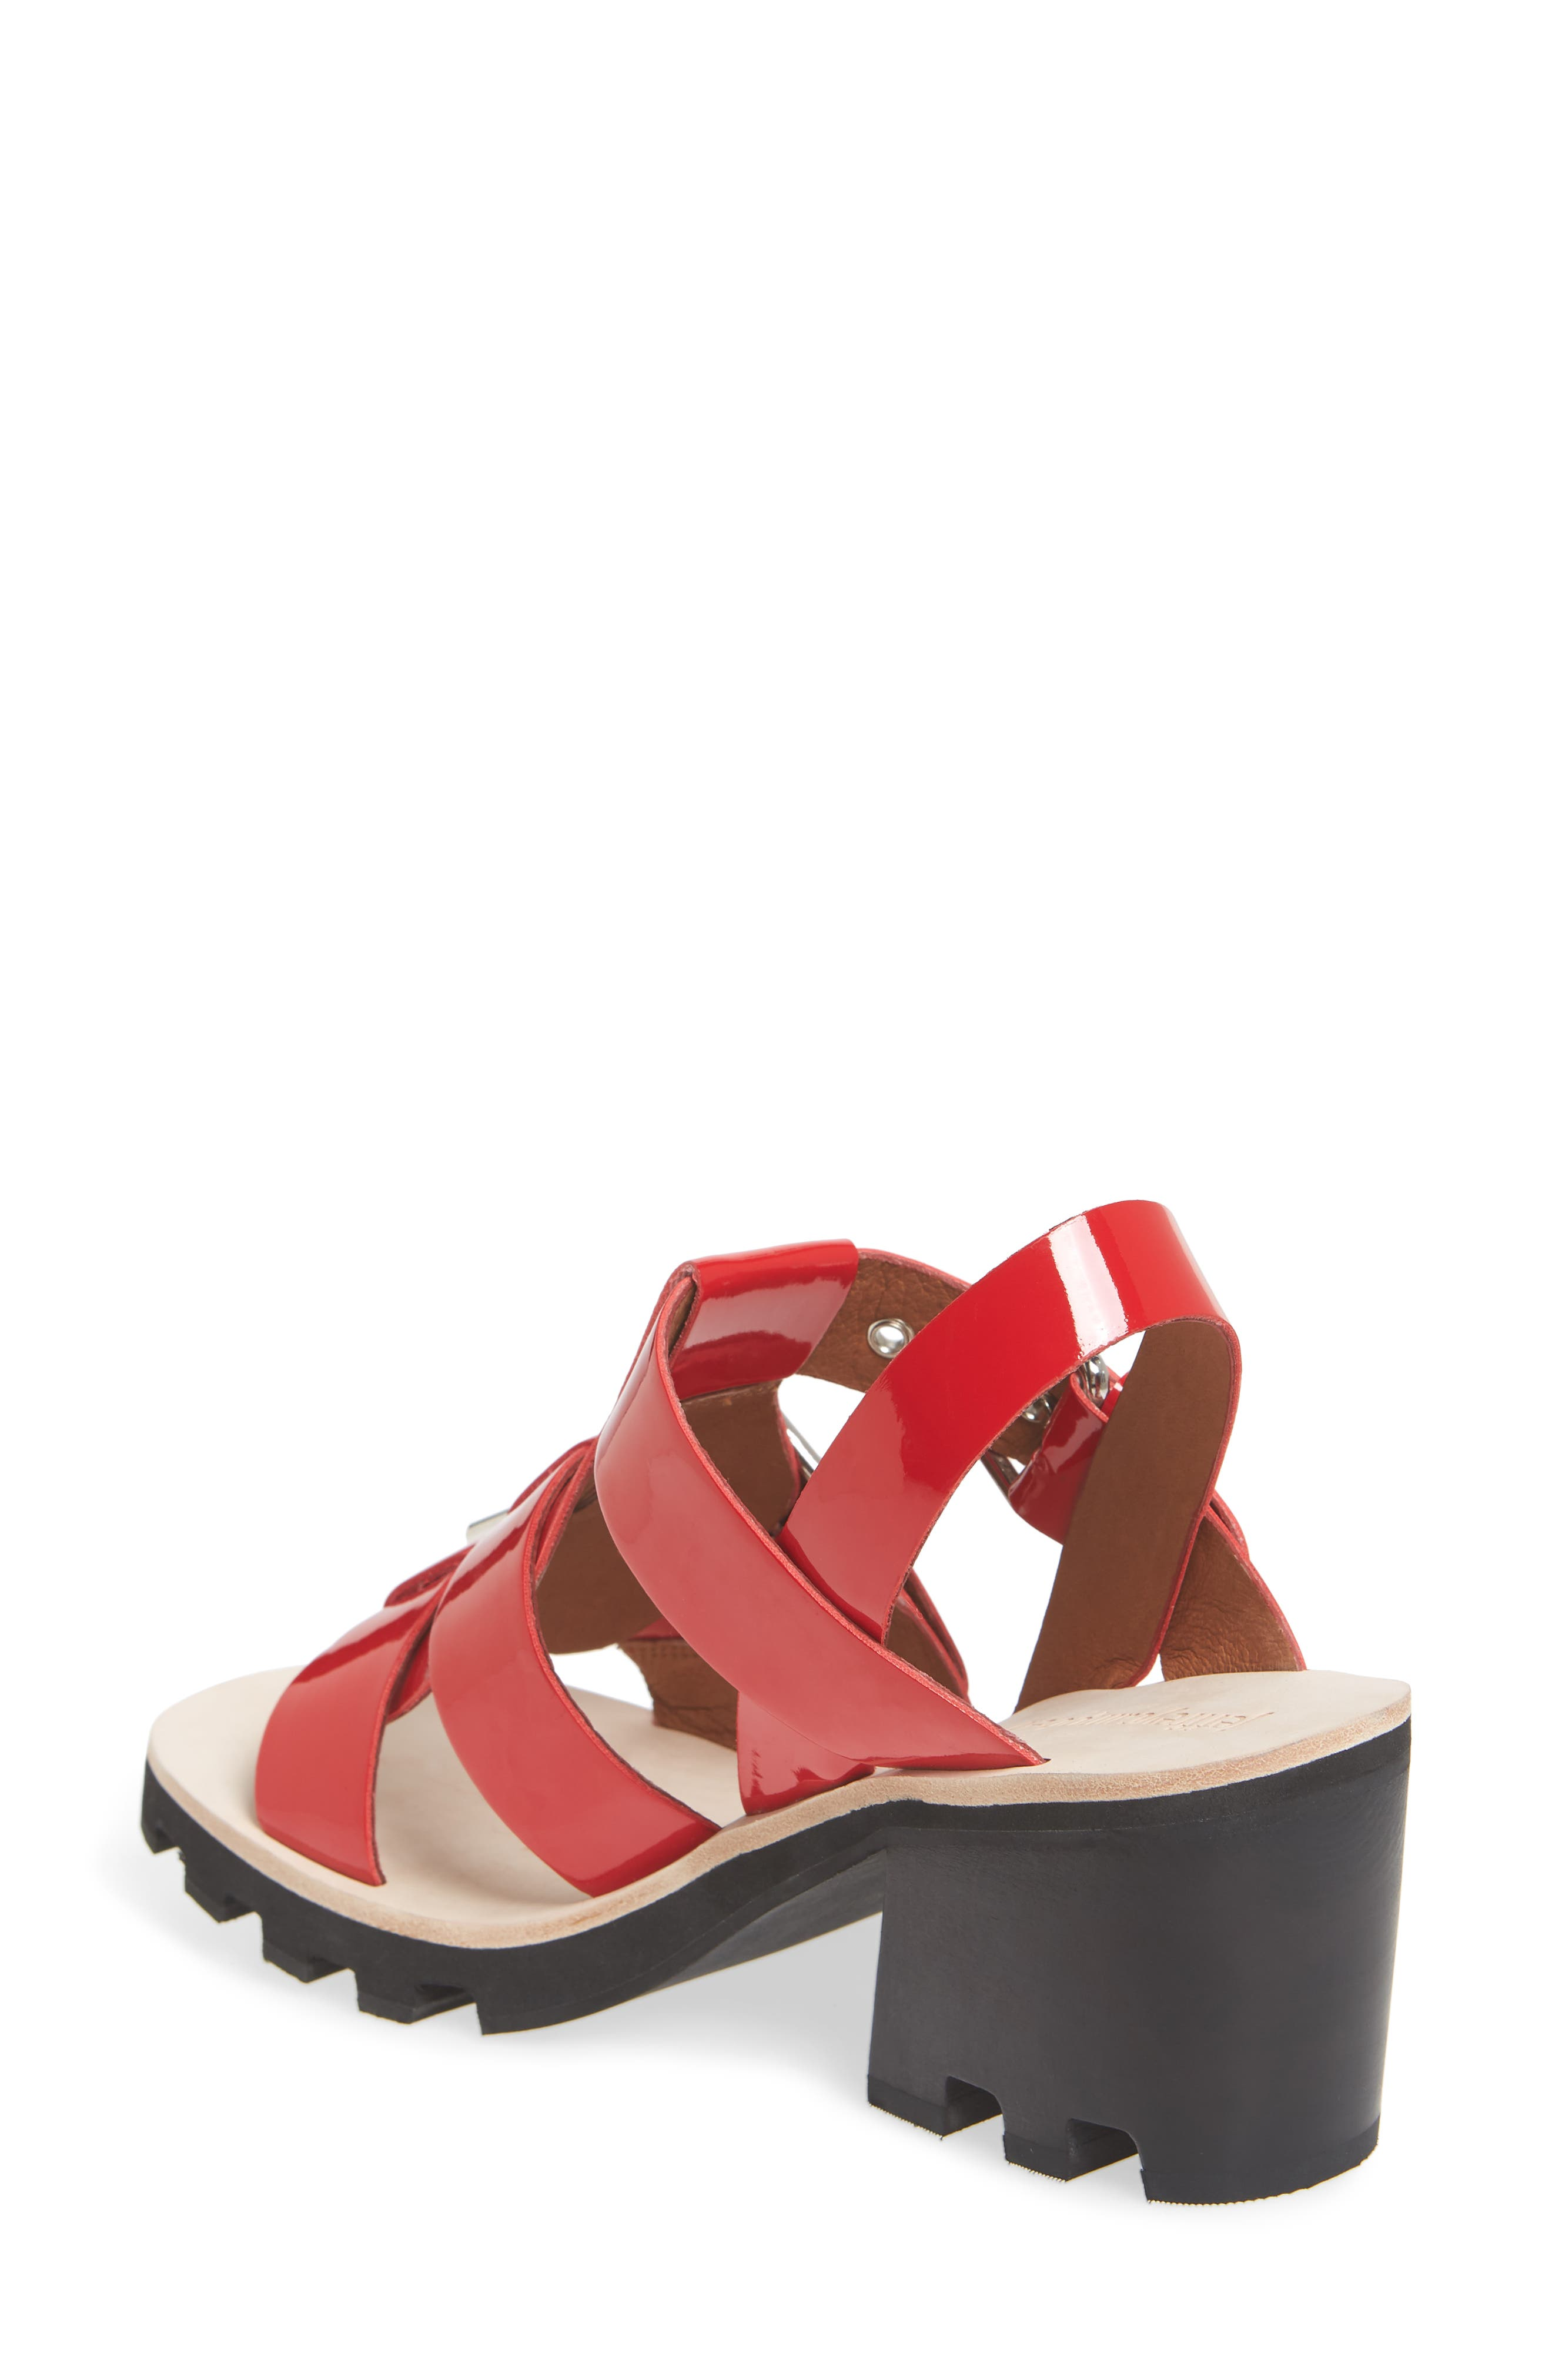 Riveter Lugged Buckle Sandal,                             Alternate thumbnail 2, color,                             Red Patent